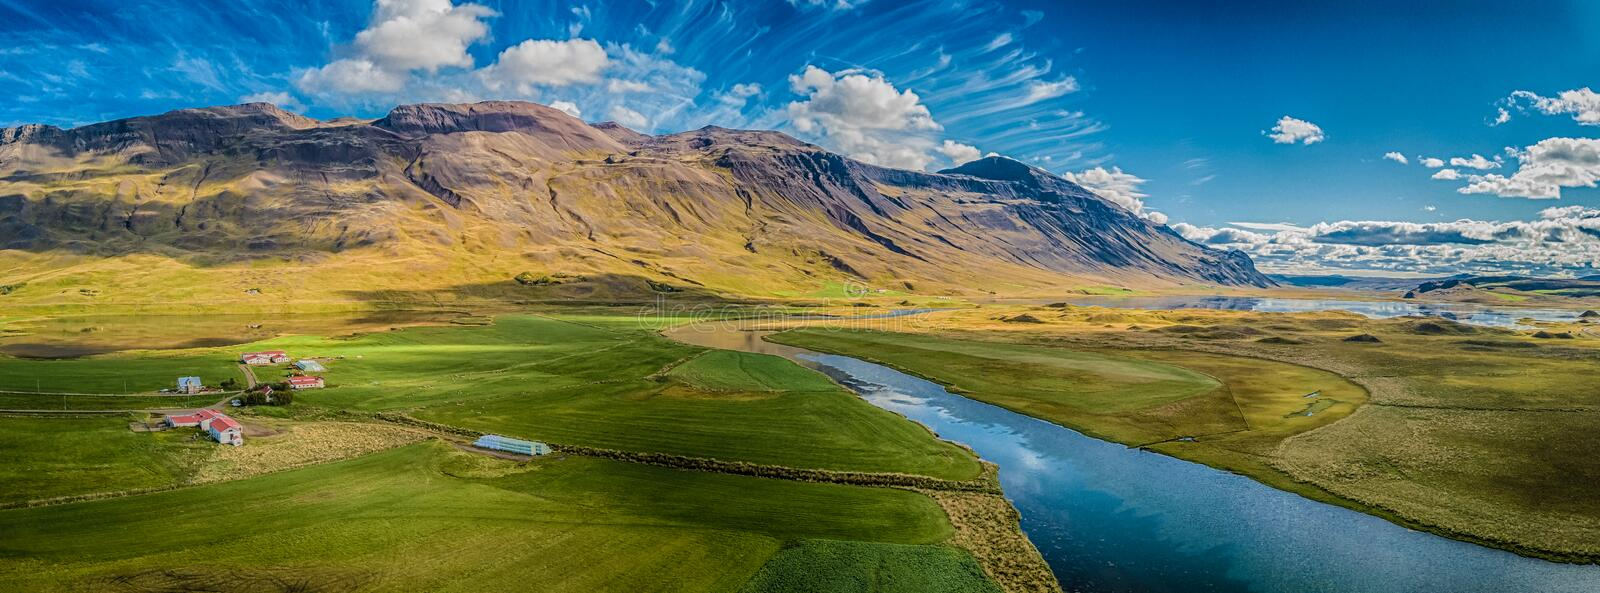 Ferme de l'Islande sous Sunny Mountains photographie stock